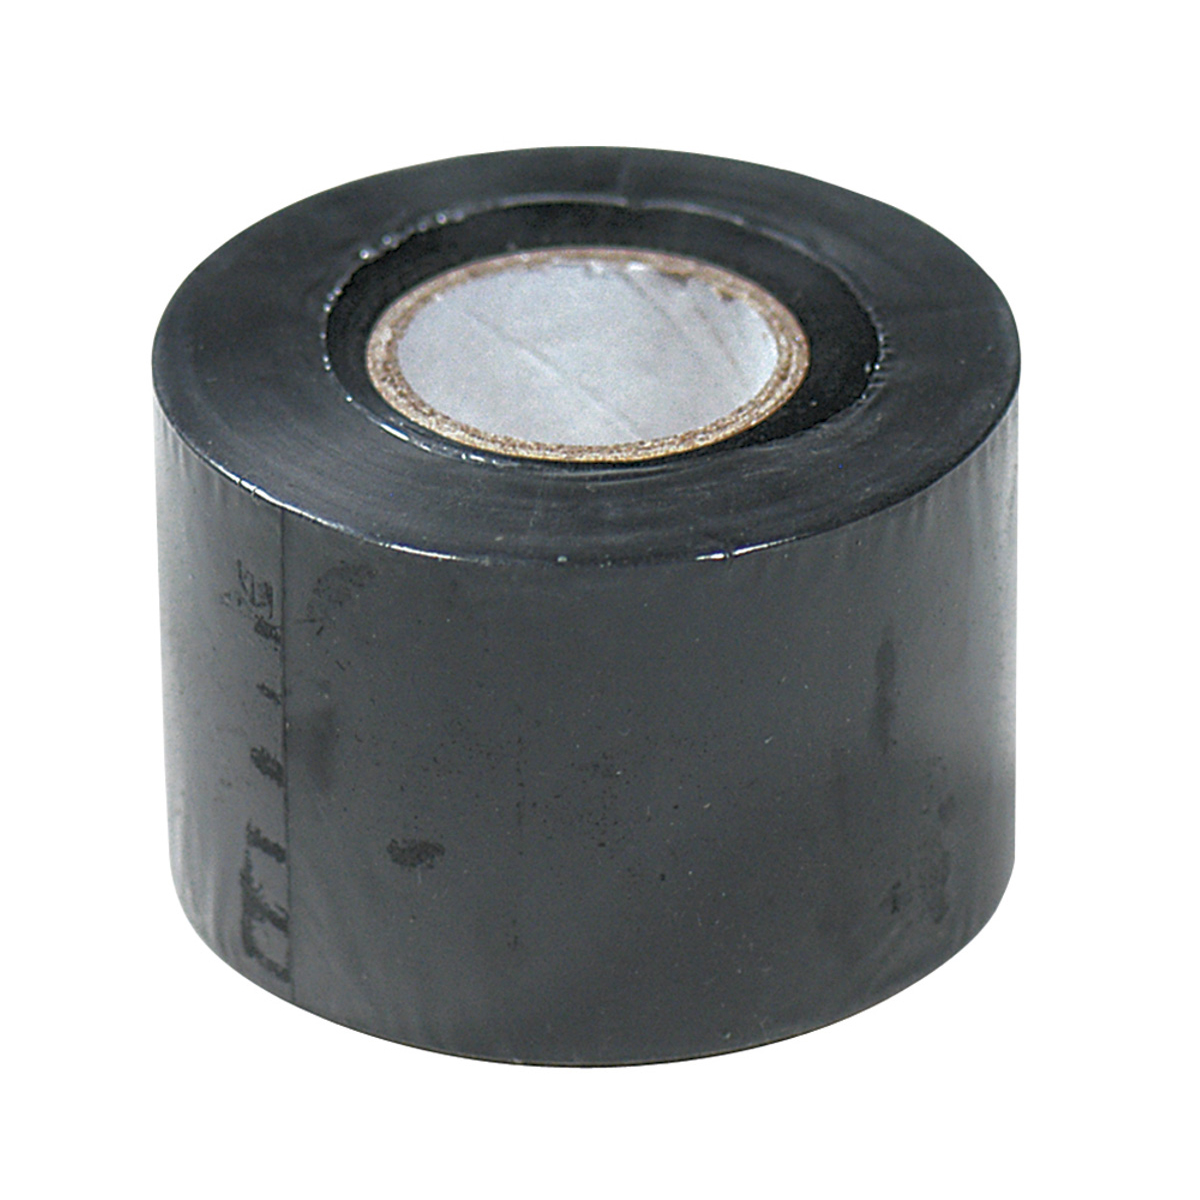 Insulating Tape for Underground Gas Pipes 50mm x 20m